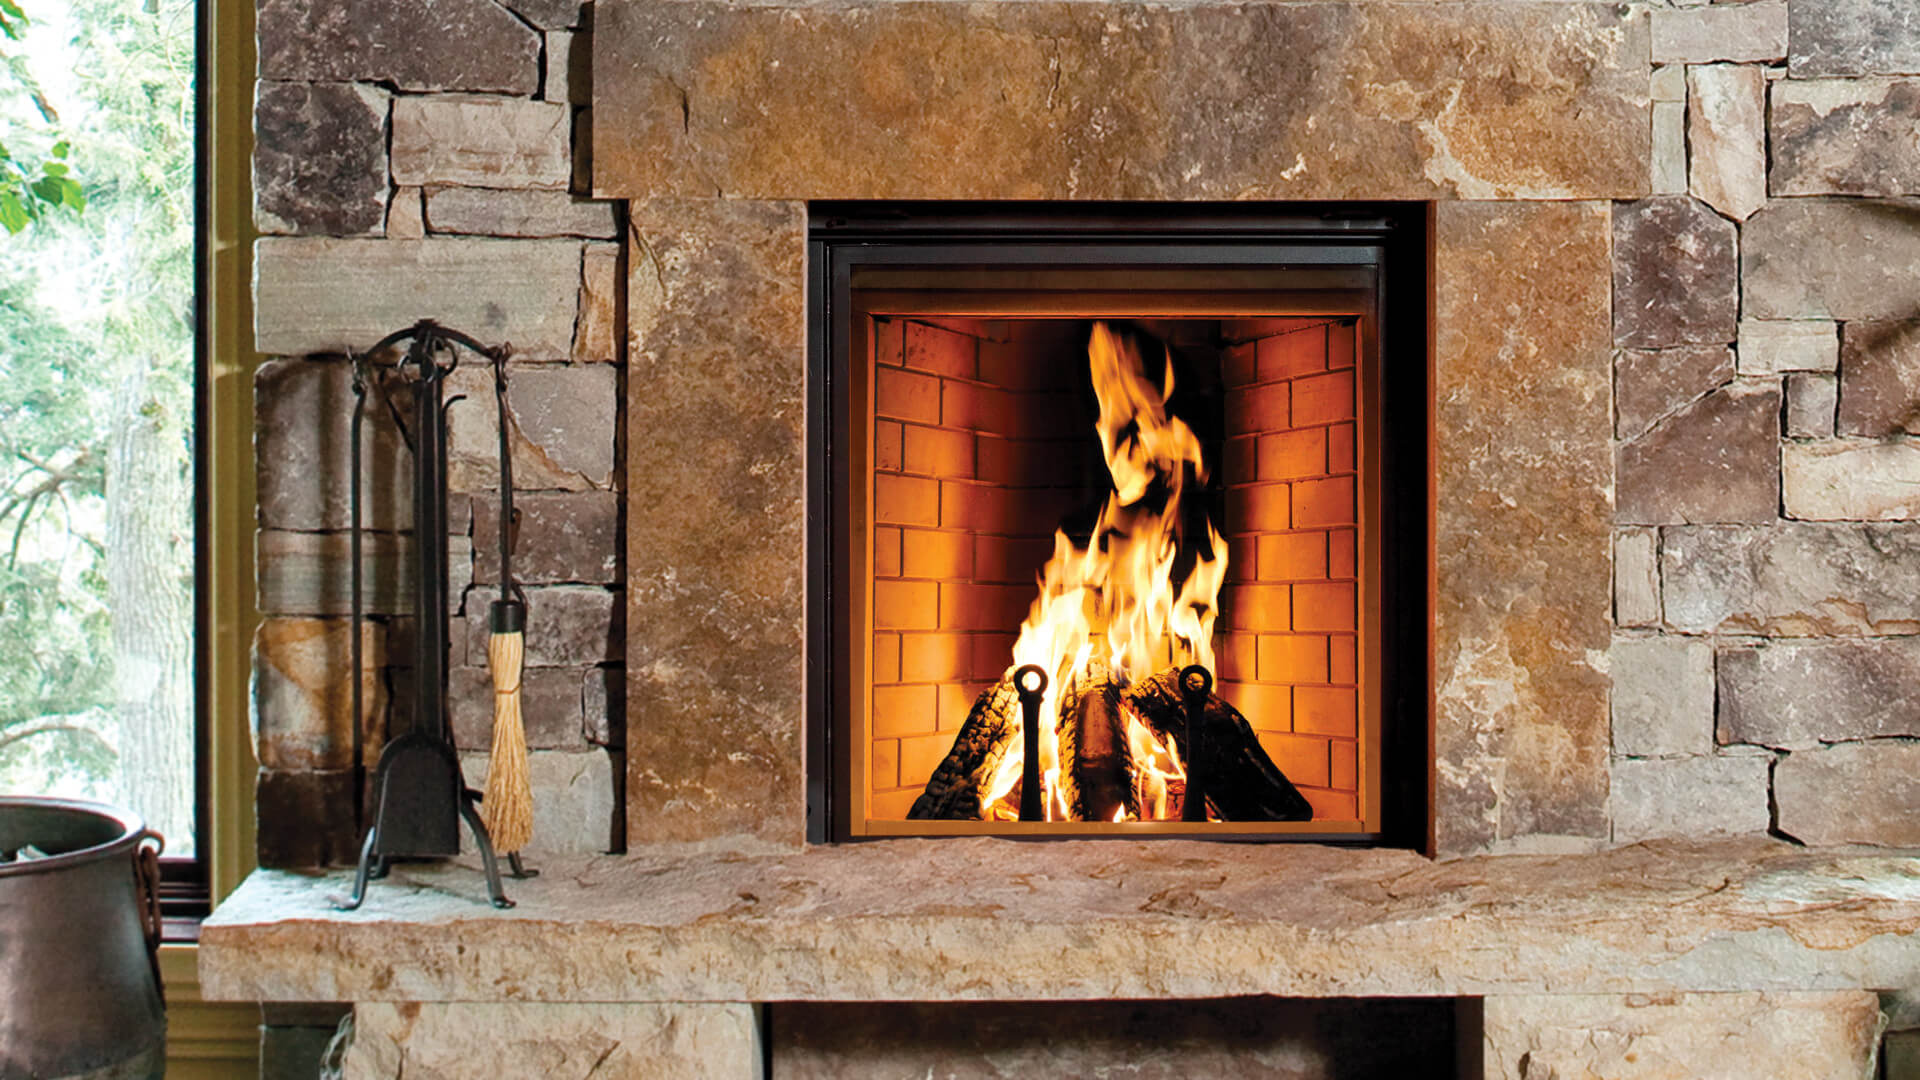 Renaissance Fireplaces  Rumford 1000 Wood Burning Fireplace  H2Oasis